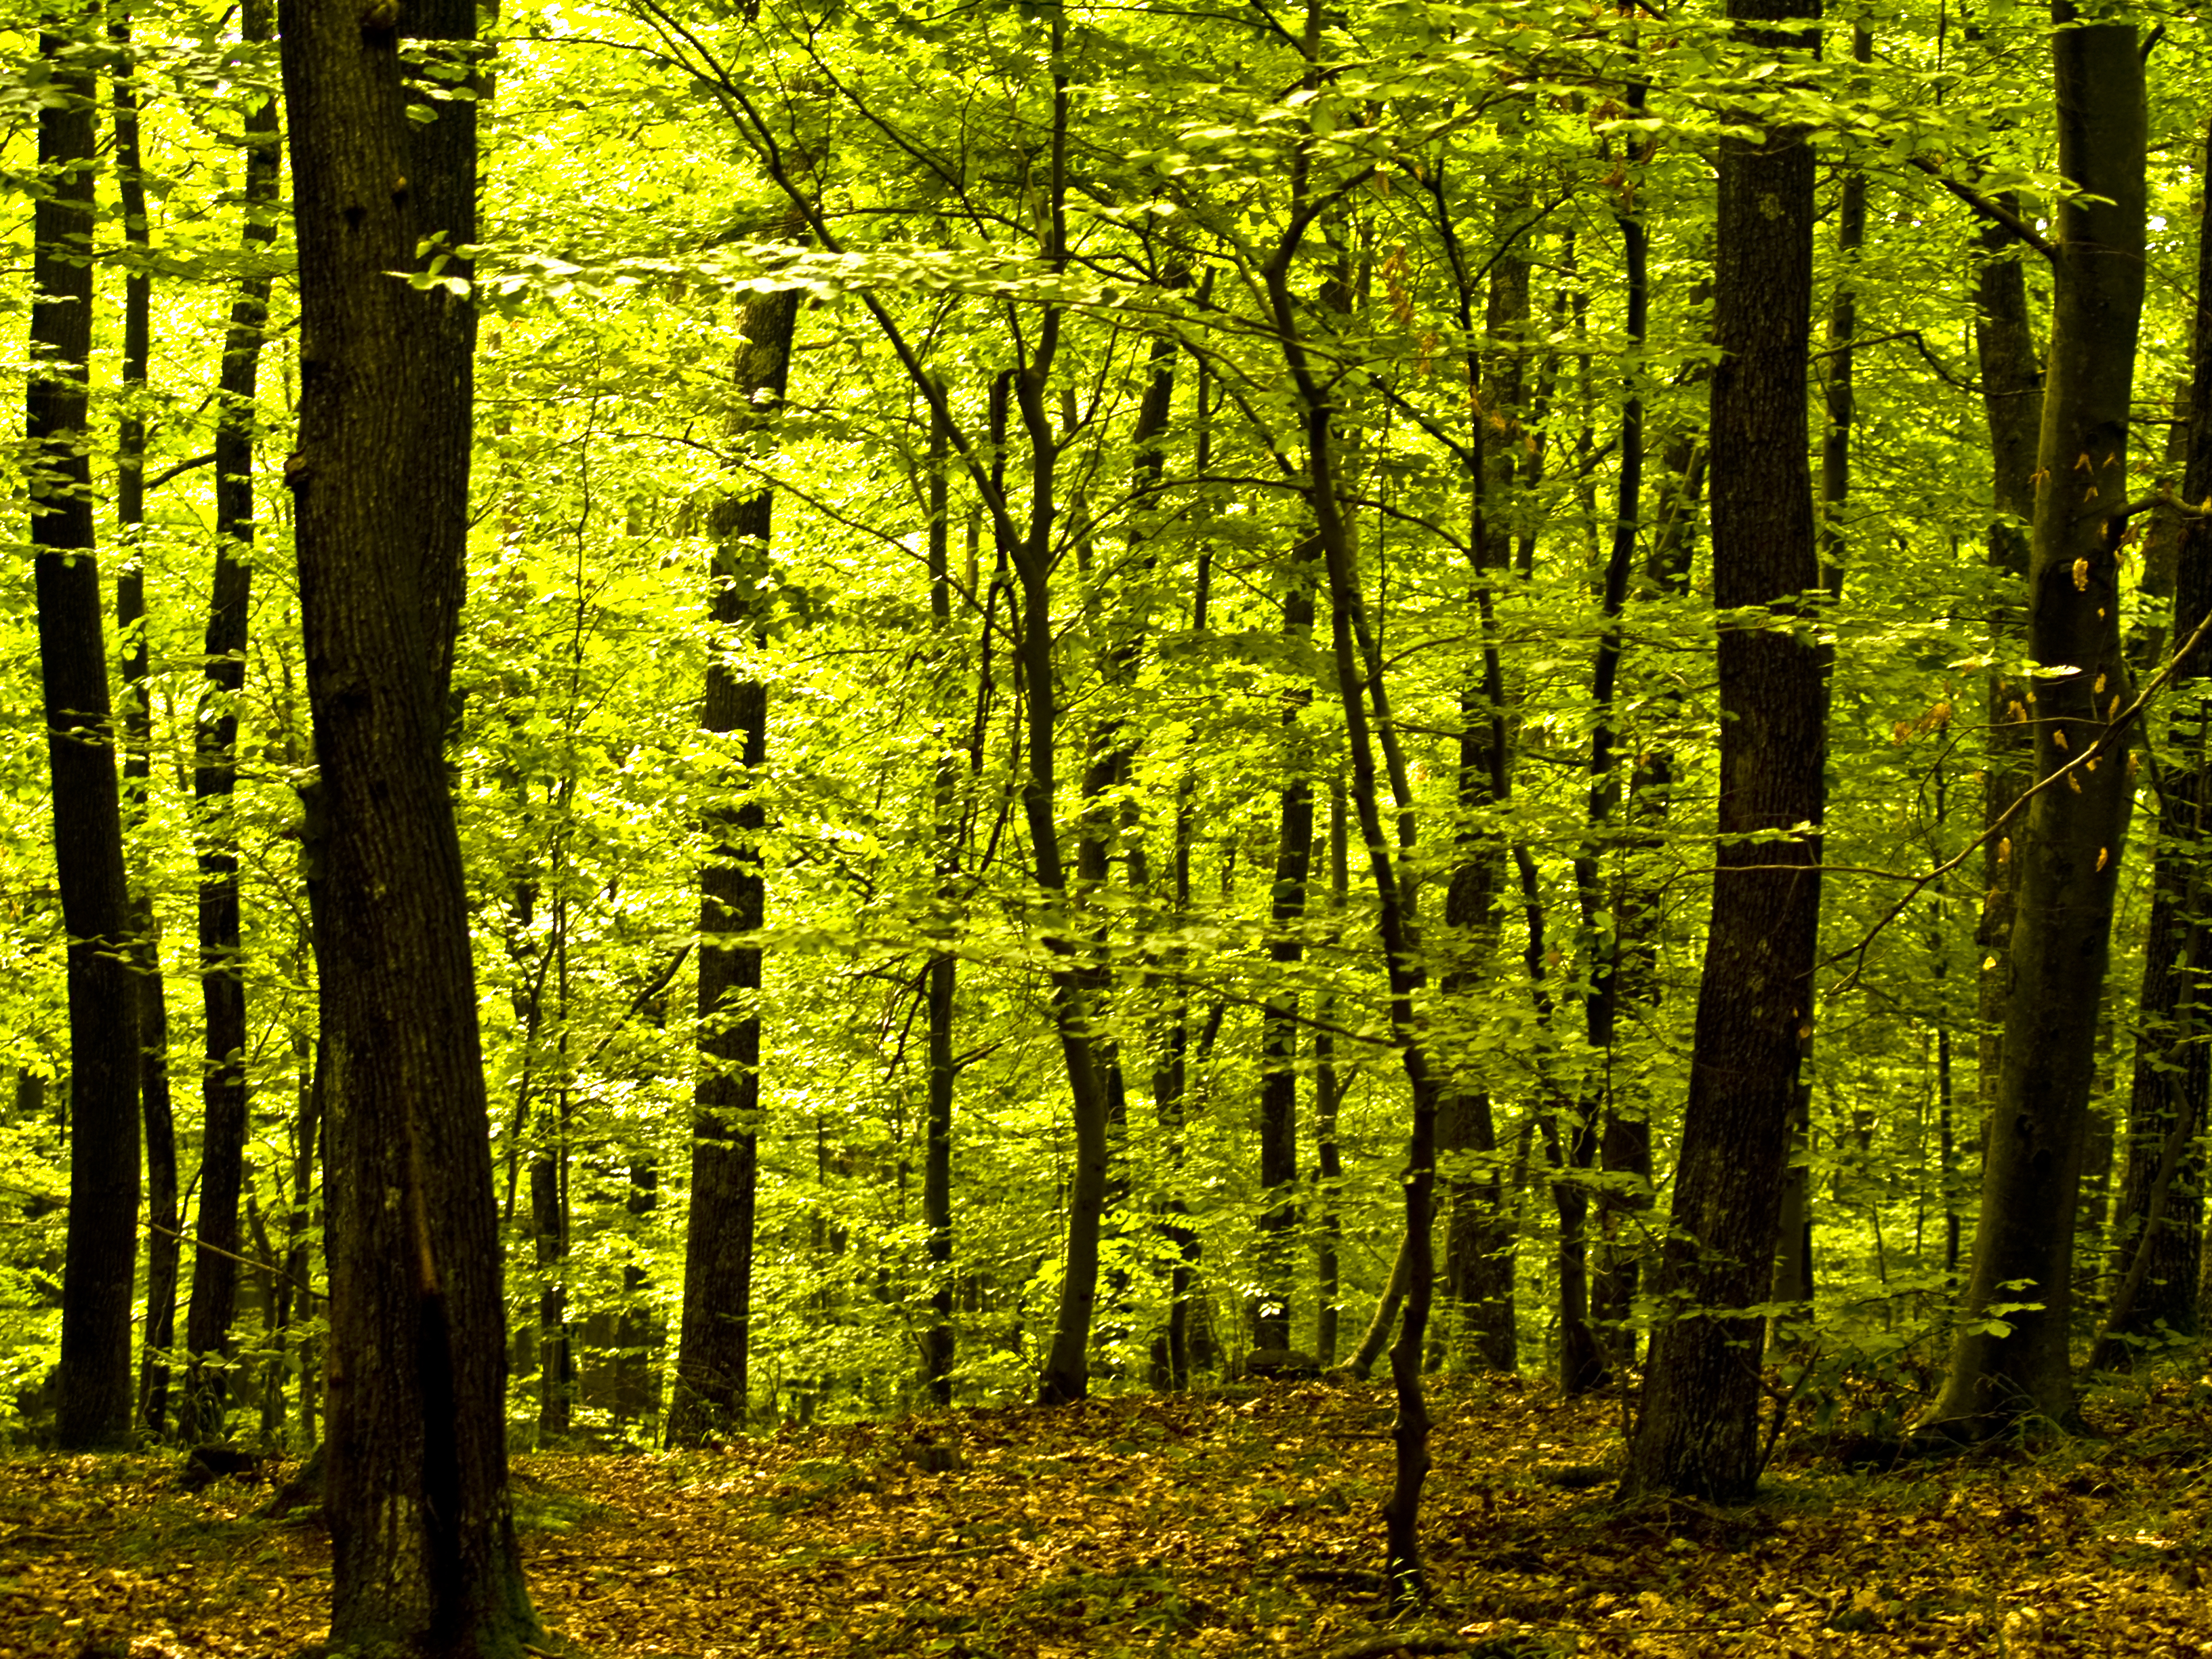 Deep forest, Forest, Green, Leafs, Plants, HQ Photo